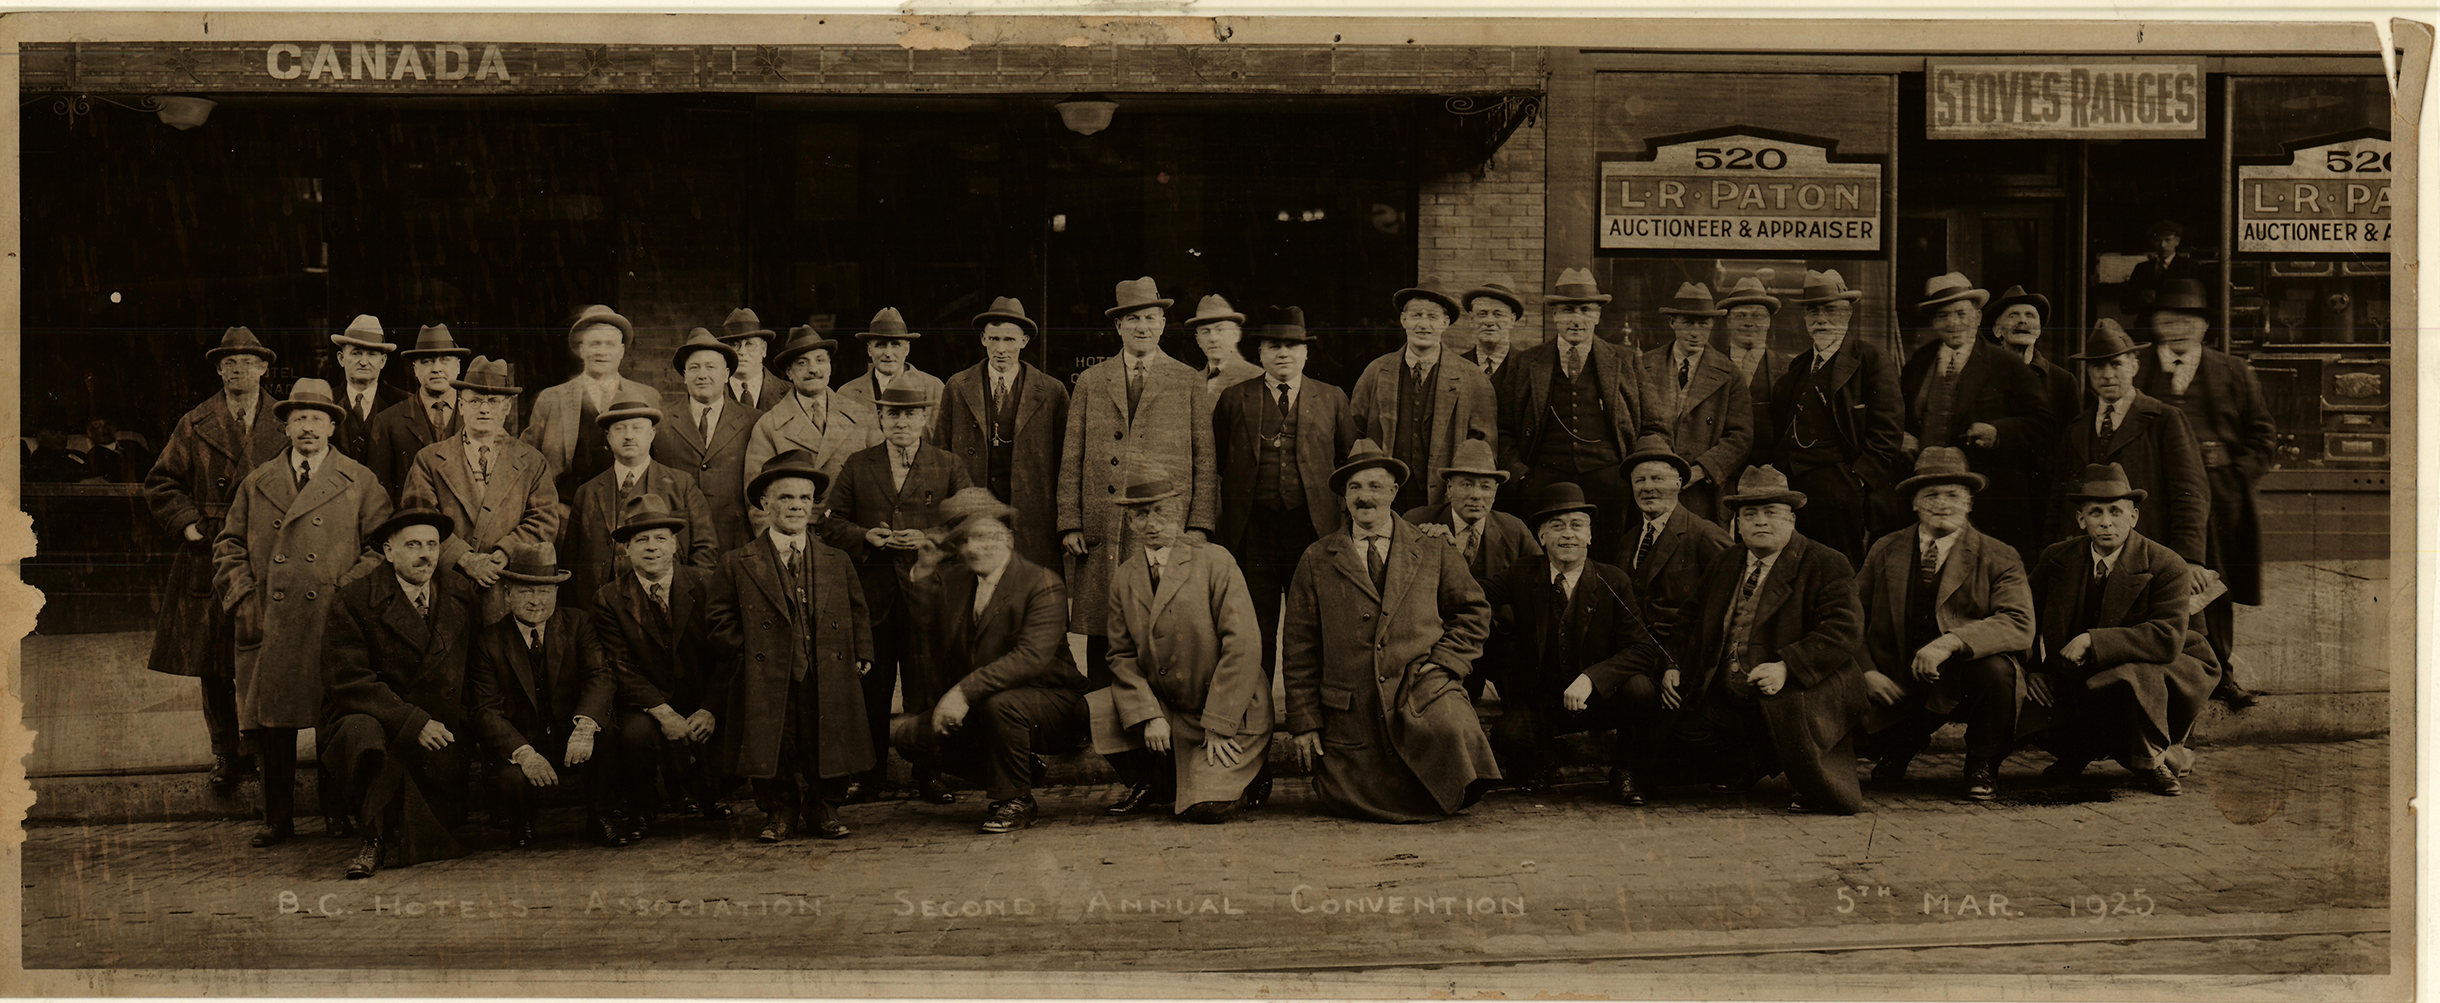 BCHA 2nd Annual Convention, 1925